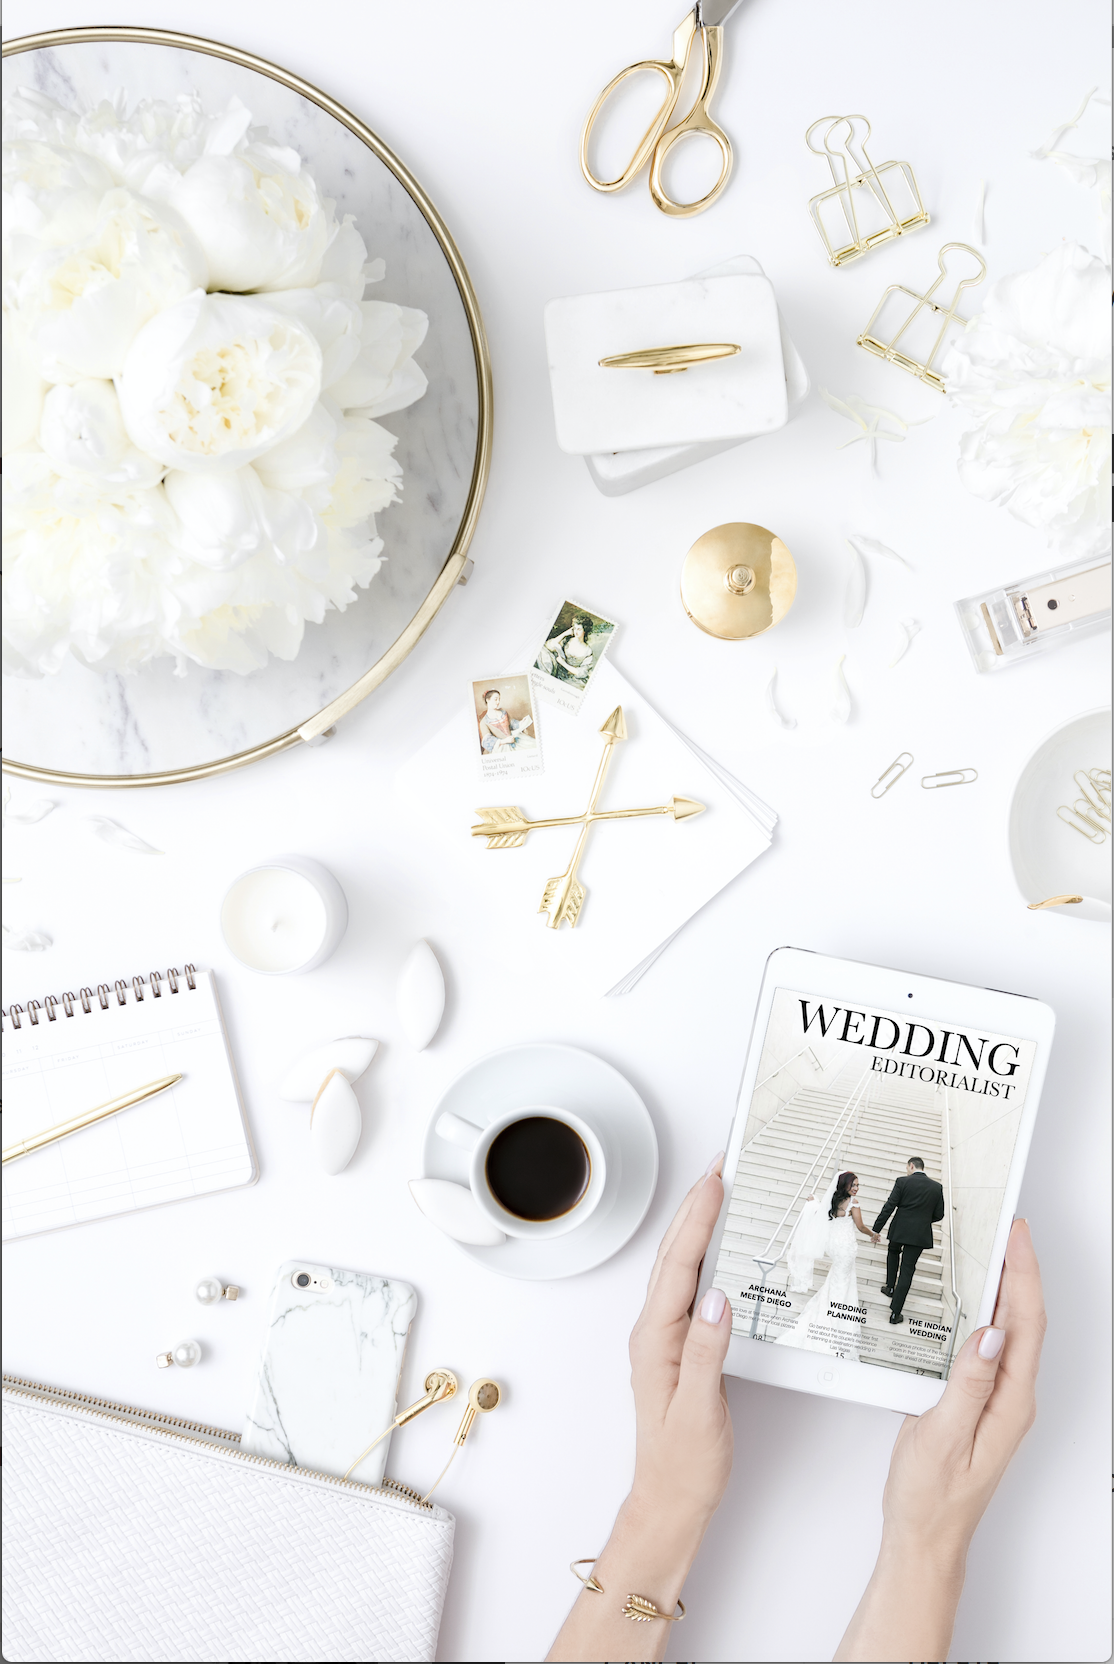 WEDDING ISSUE:  After publishing their love story in a Destination Issue, Archana and Diego upgraded their magazine to include their wedding photos as well. This issue is nowovel 80 pages, and allows our newlyweds to carry their wedding magazine wit them everyone on their phone and iPad. Thank you to our partners at J.Anne Photography, Andrea Eppolito Events, Destinations by Design, and the Mandarin Oriental for creating such an outstanding event. To read more,  CLICK HERE.